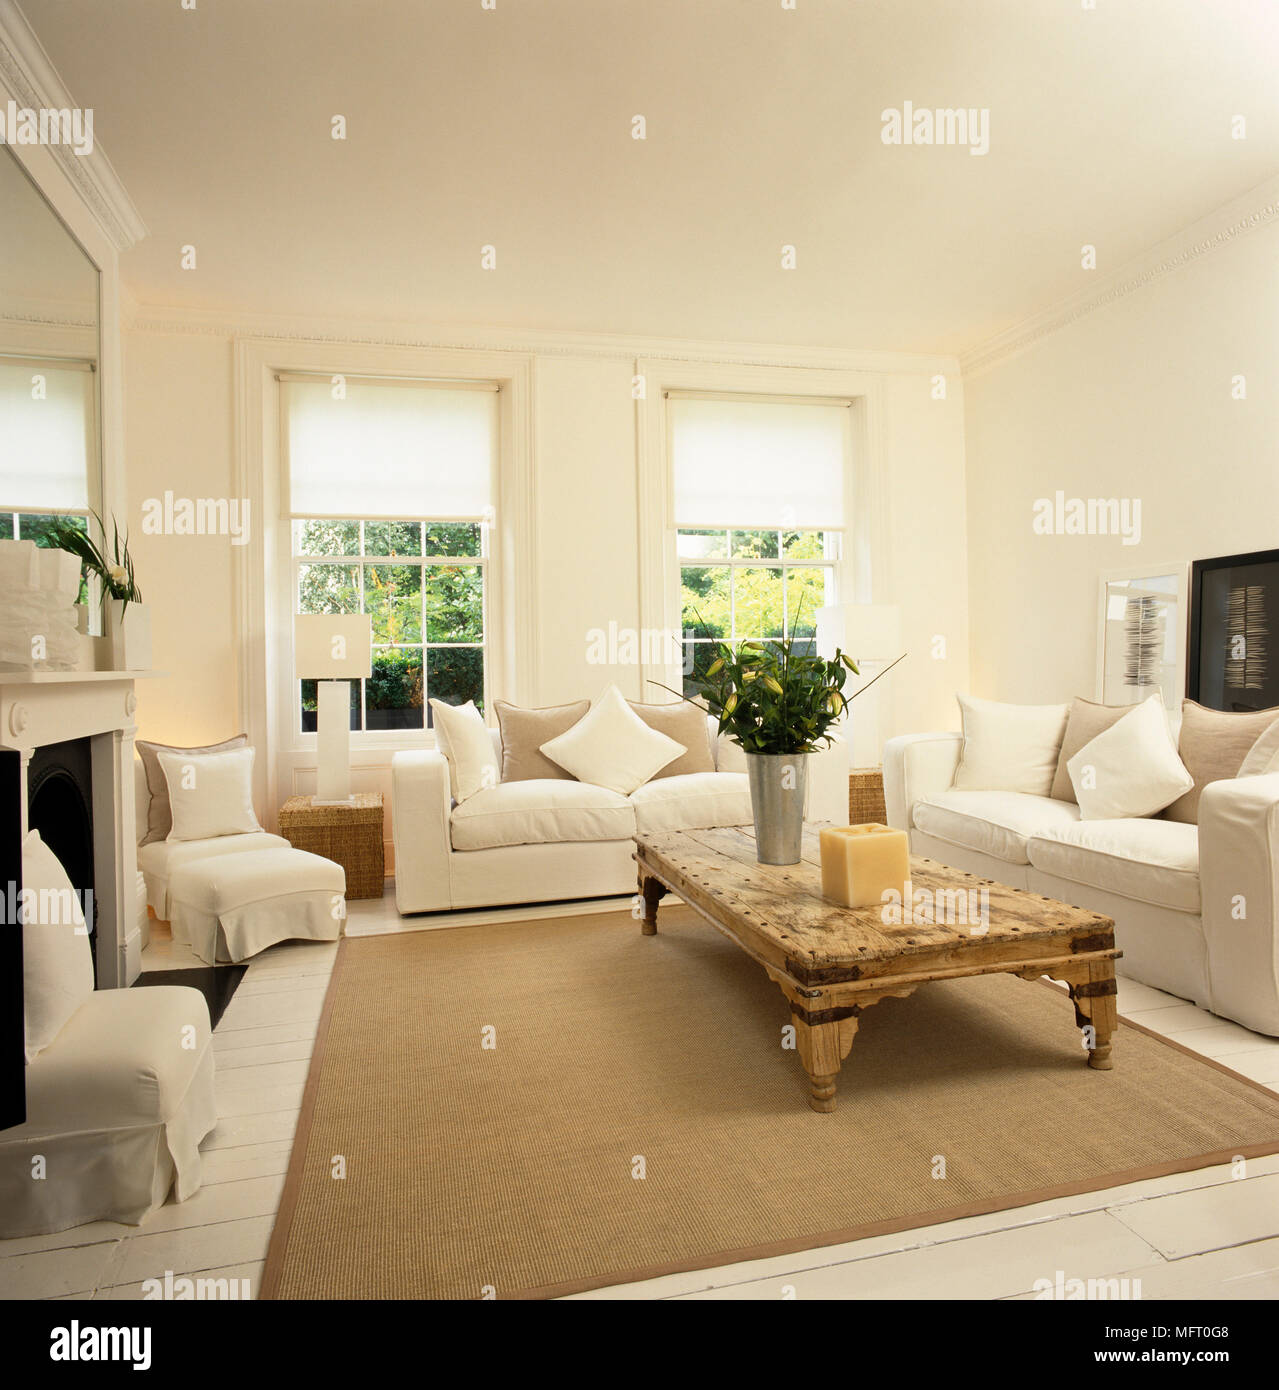 Elegant White And Beige Sitting Room With Painted